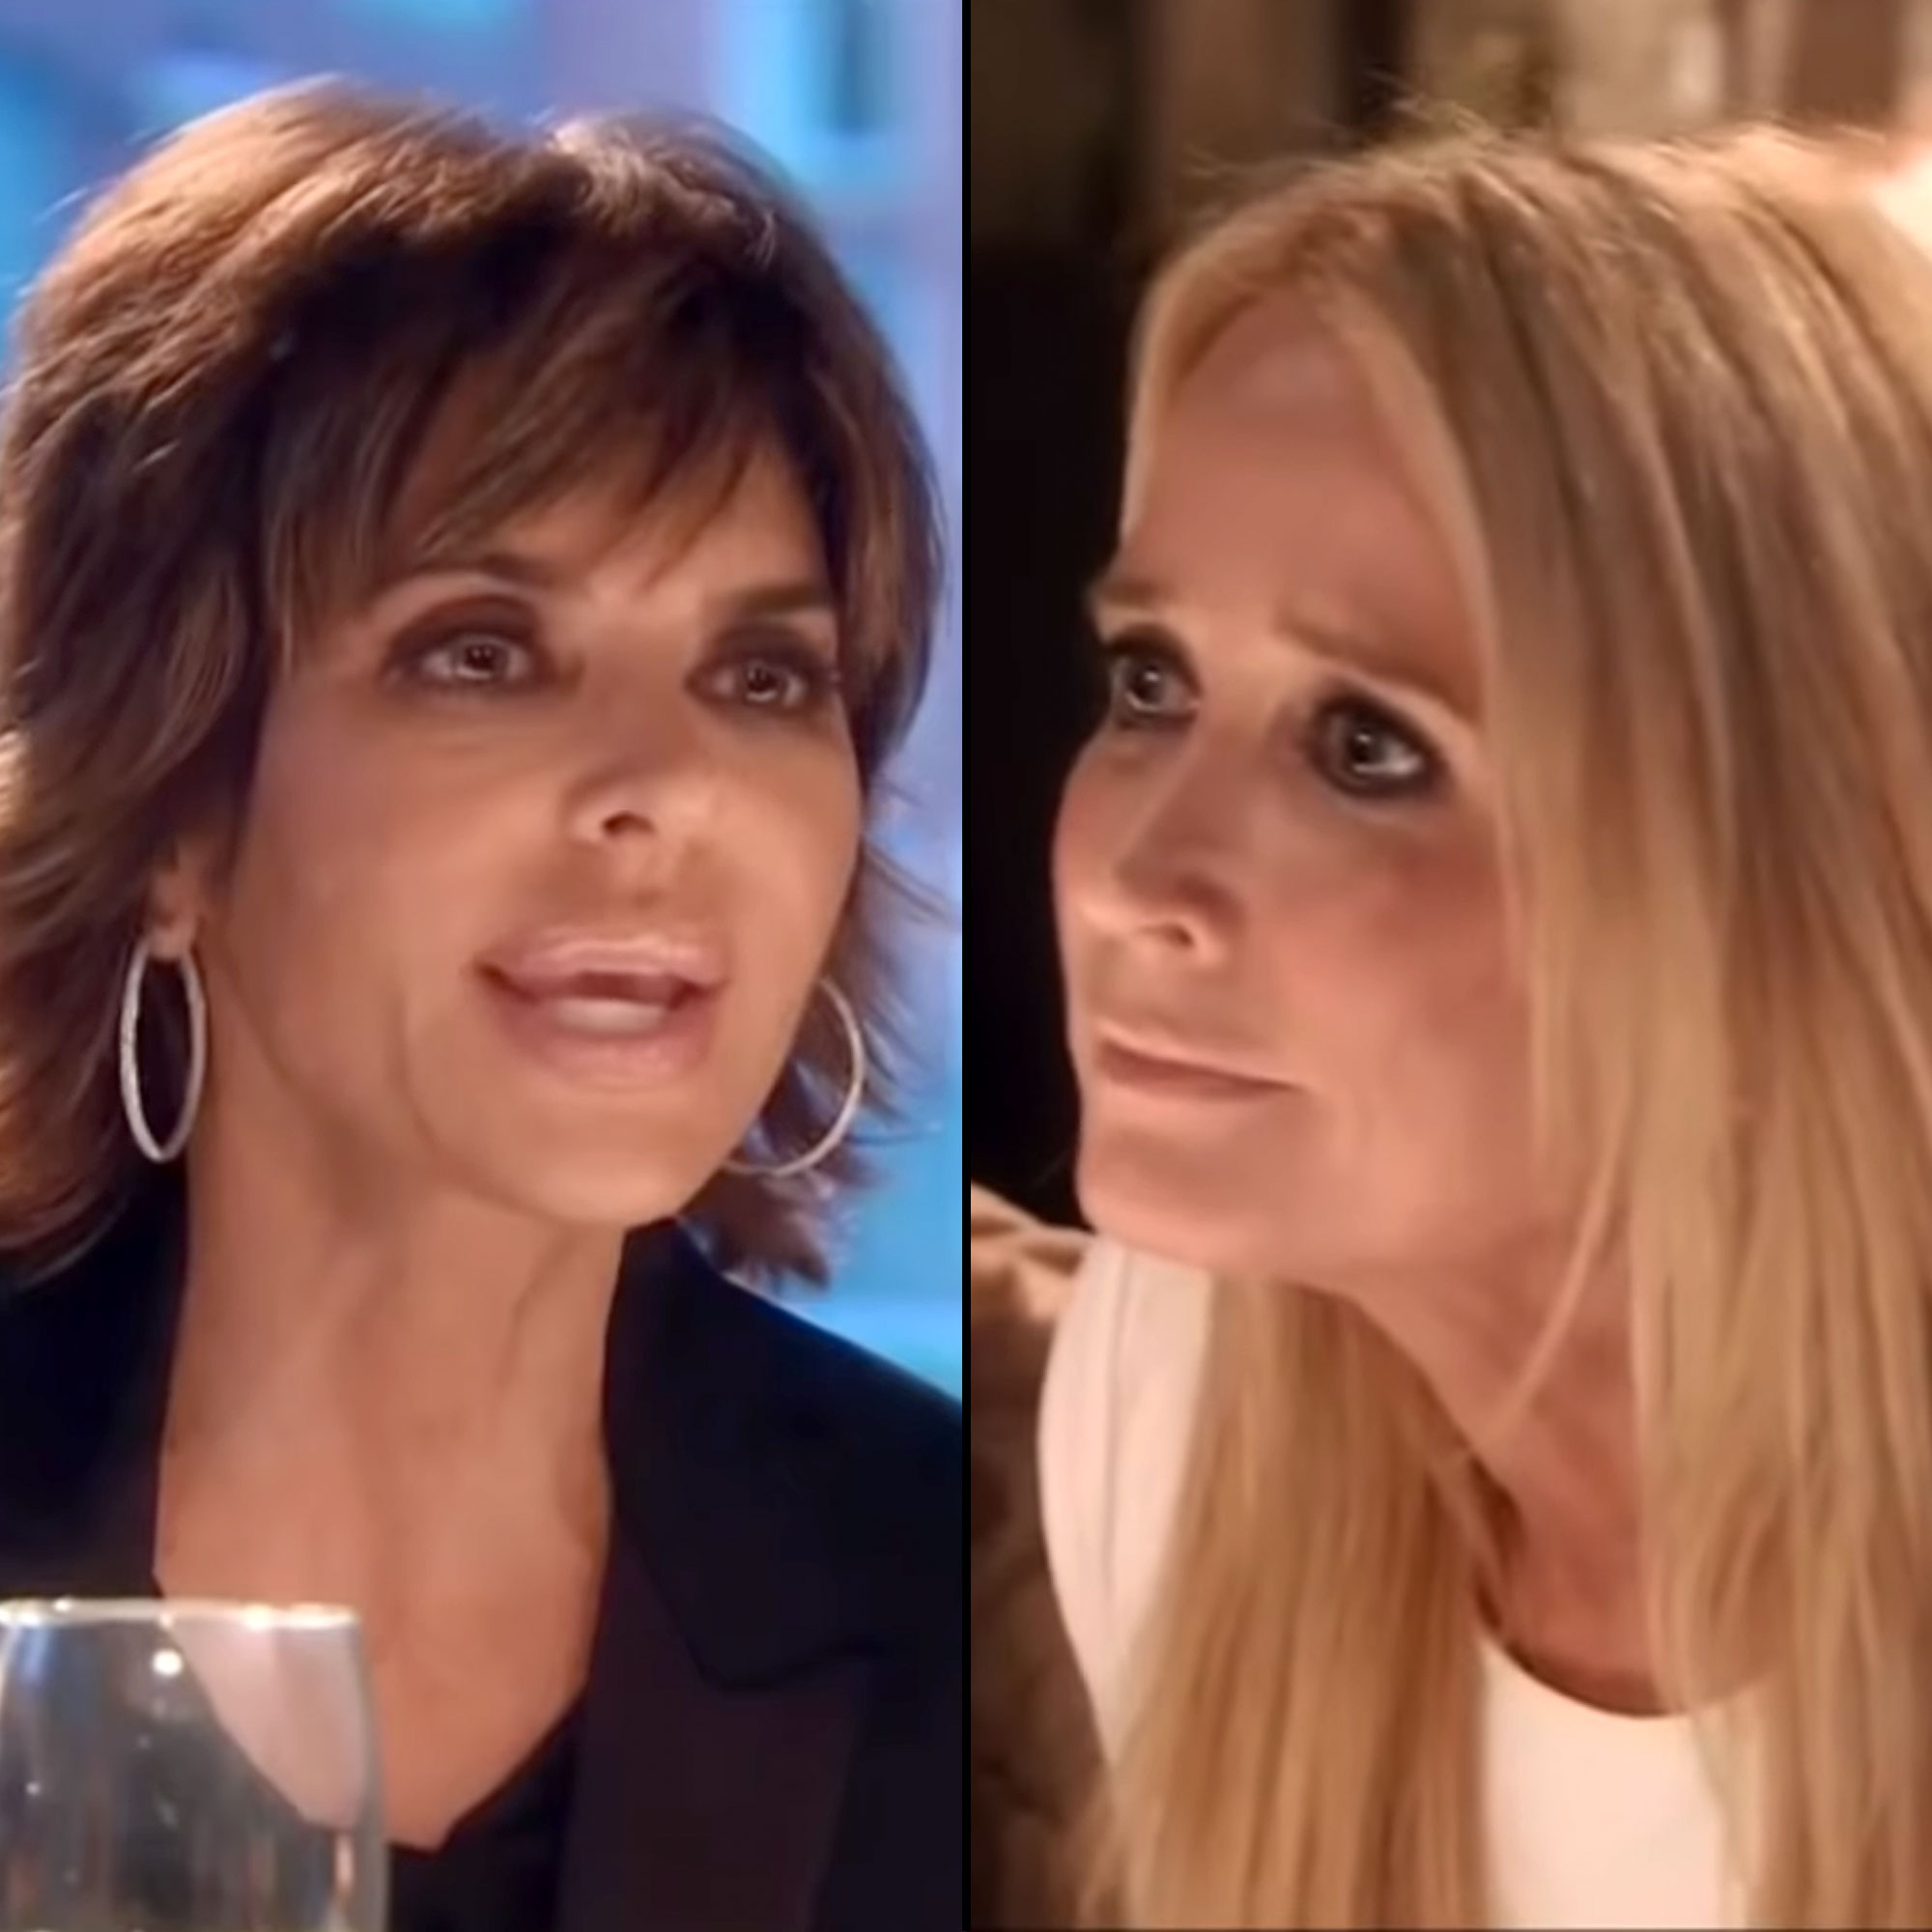 """Lisa Rinna's Most Savage Comebacks - The TV personality went off during a March 2015 episode of The Real Housewives of Beverly Hills when Kim claimed to have dirt on Rinna's husband, Harry Hamlin . """"Let me tell you something: Don't touch my husband ever,"""" the Entourage alum screamed at her costar before tossing her drink and breaking a glass ."""